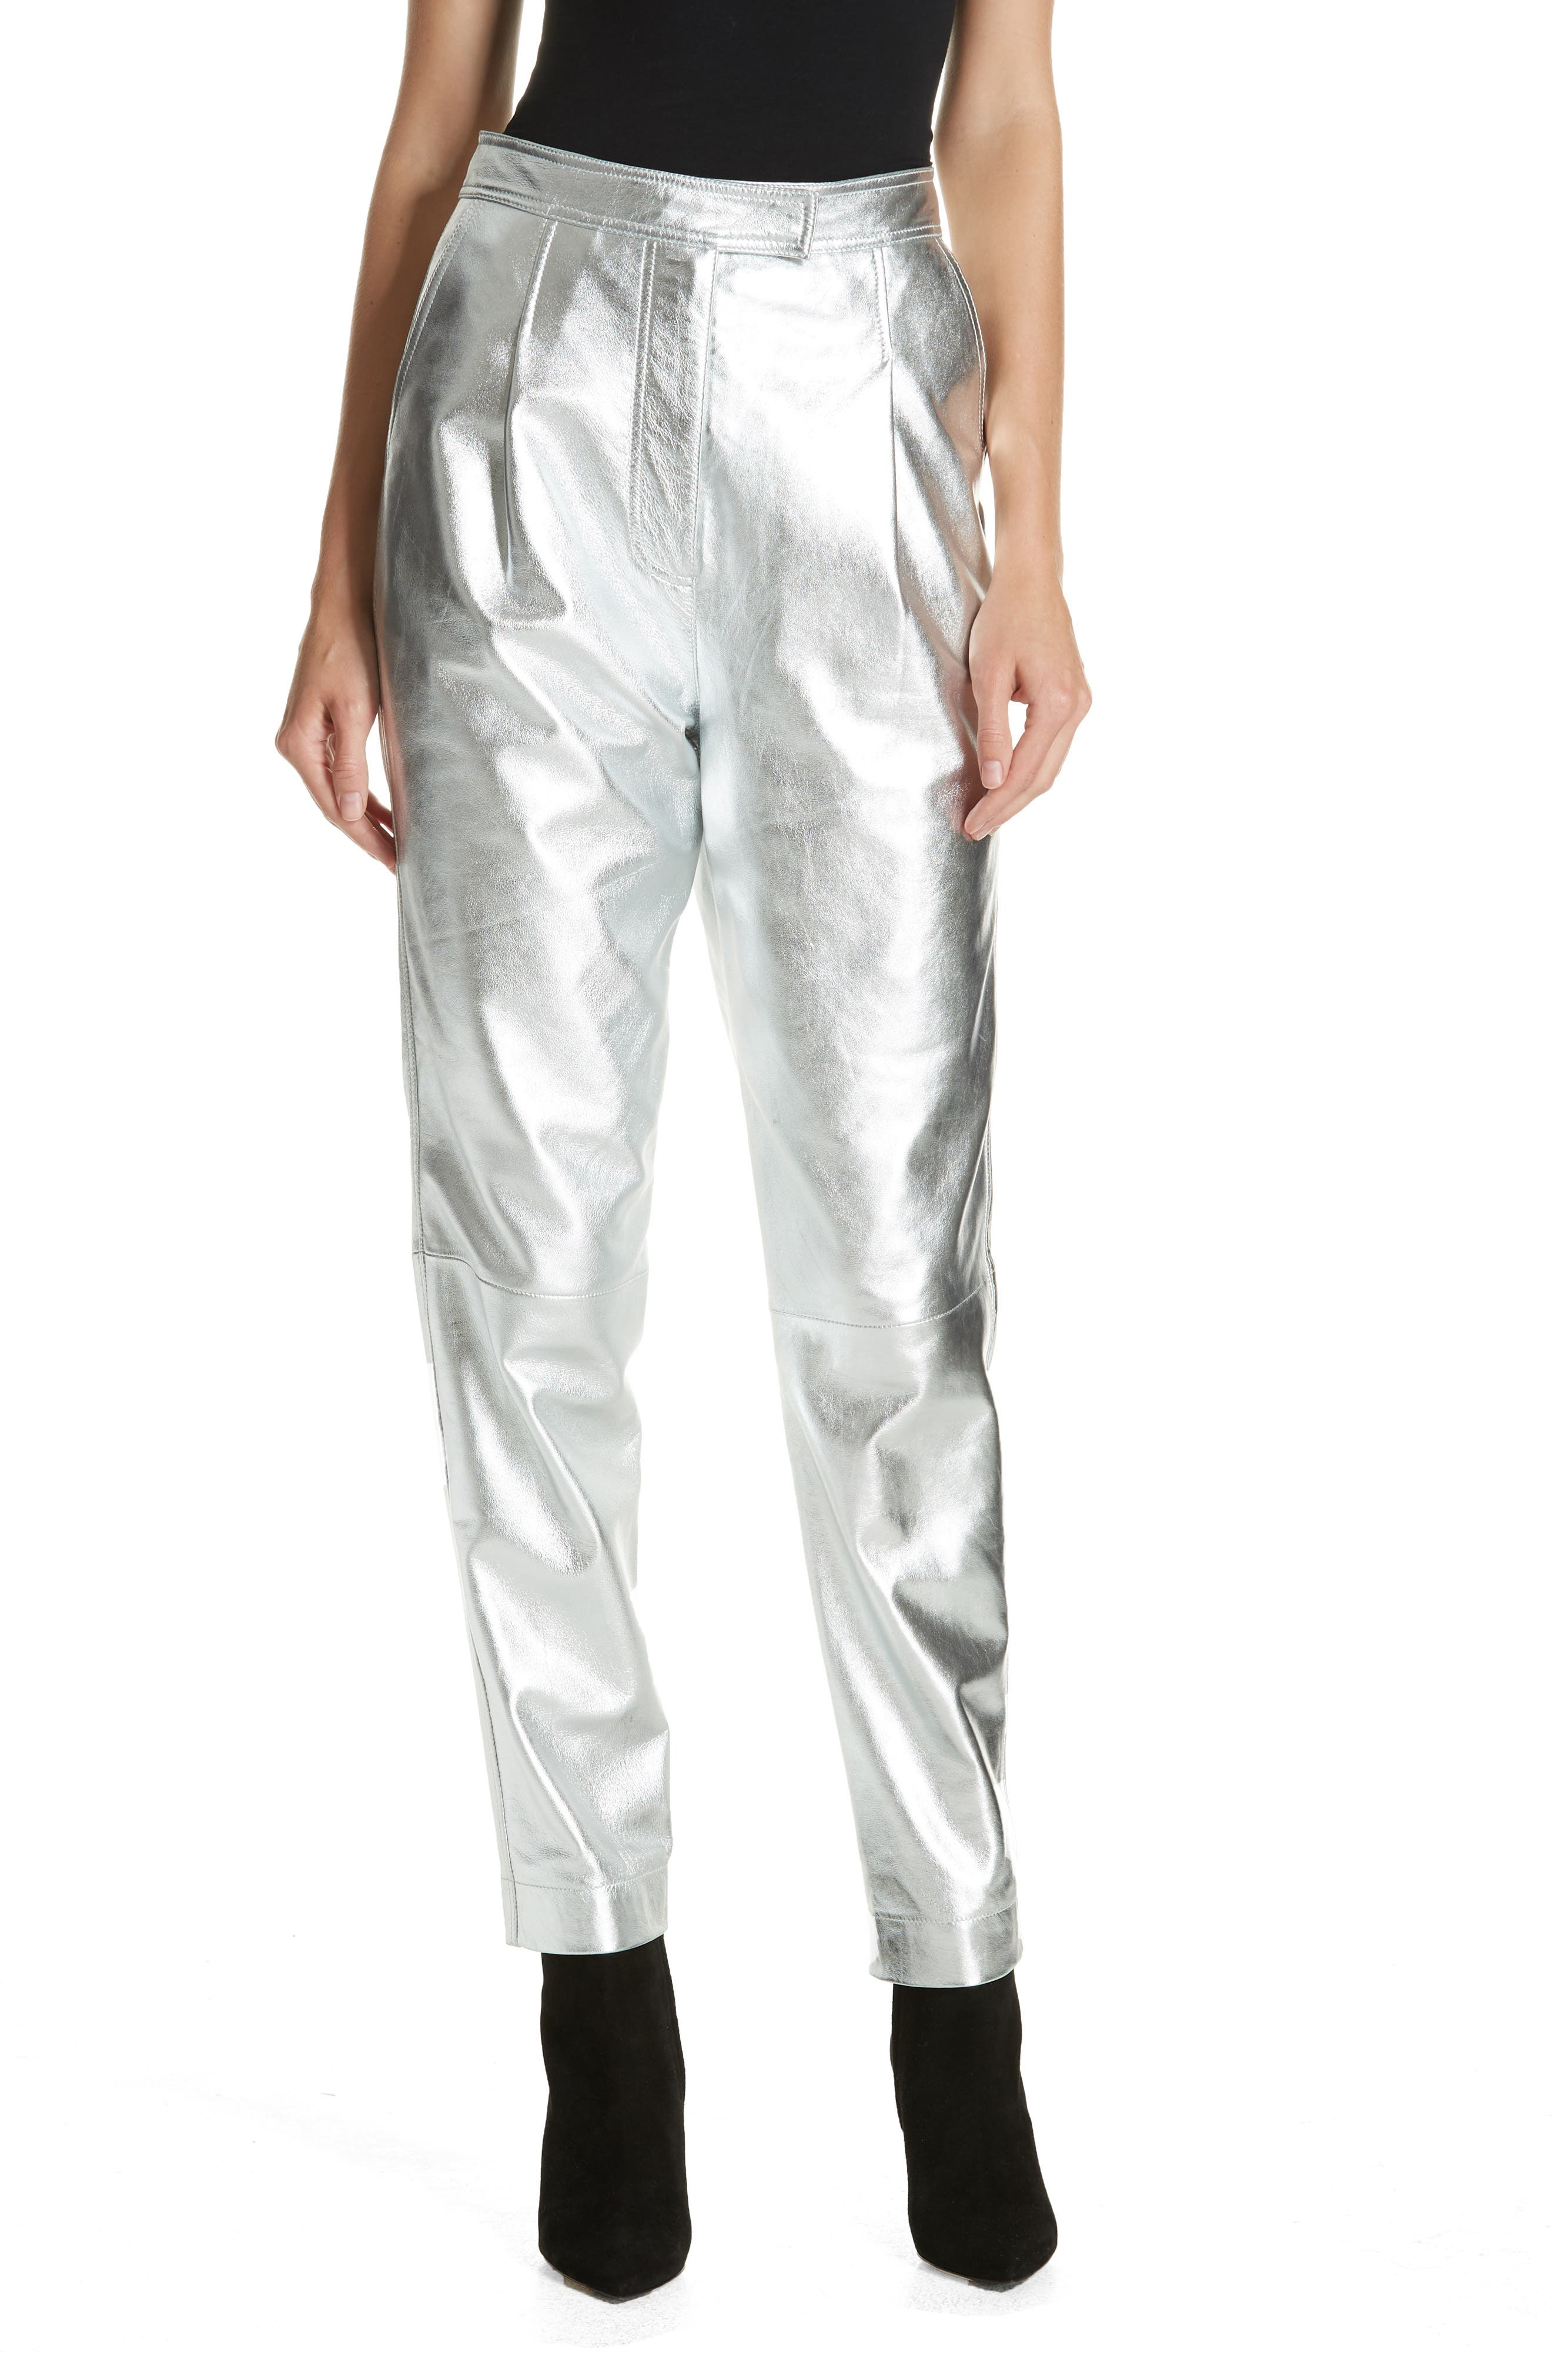 ROBERT RODRIGUEZ Metallic Leather Trousers in Silver